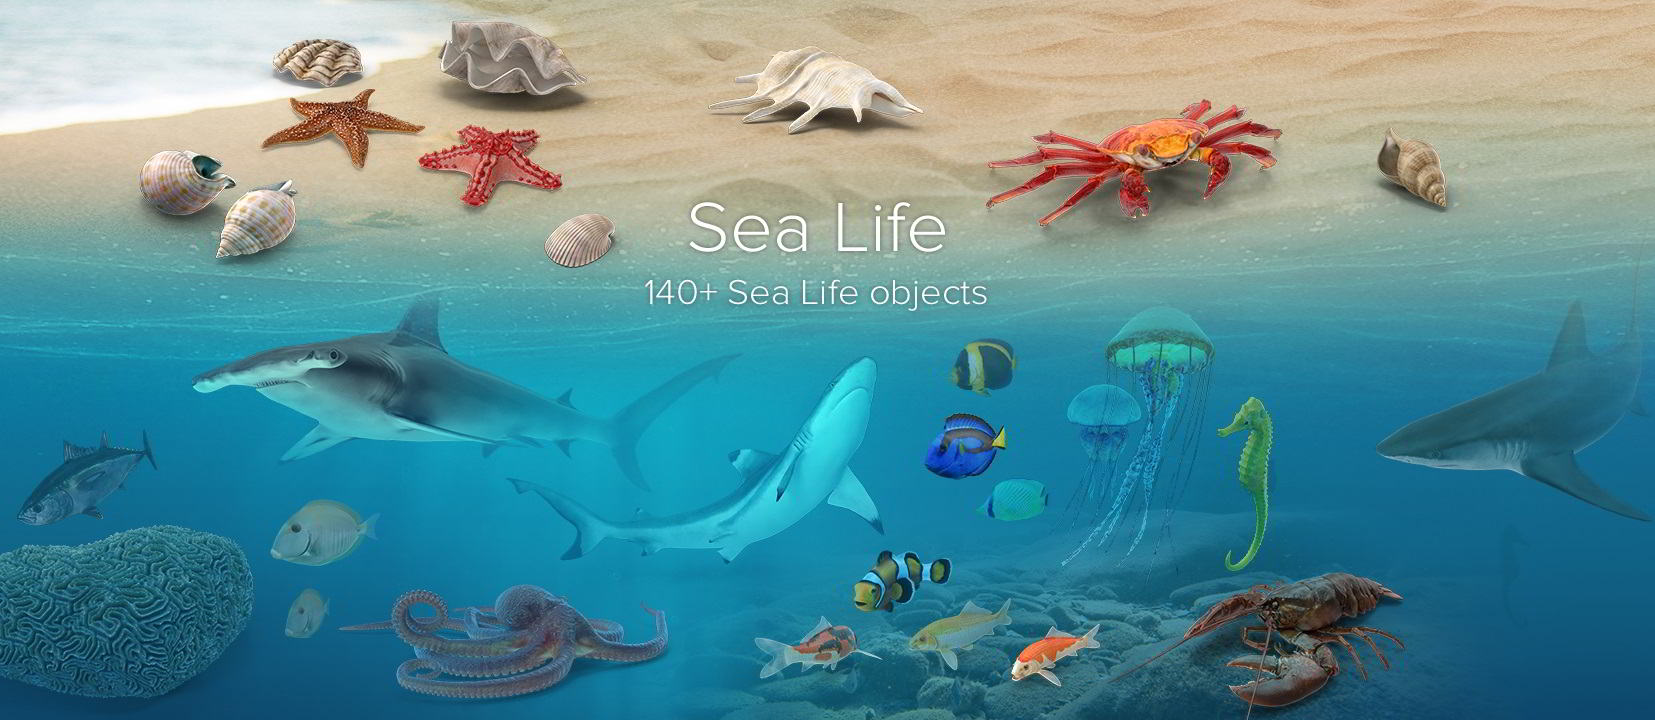 PixelSquid – Sea Life Collection free download